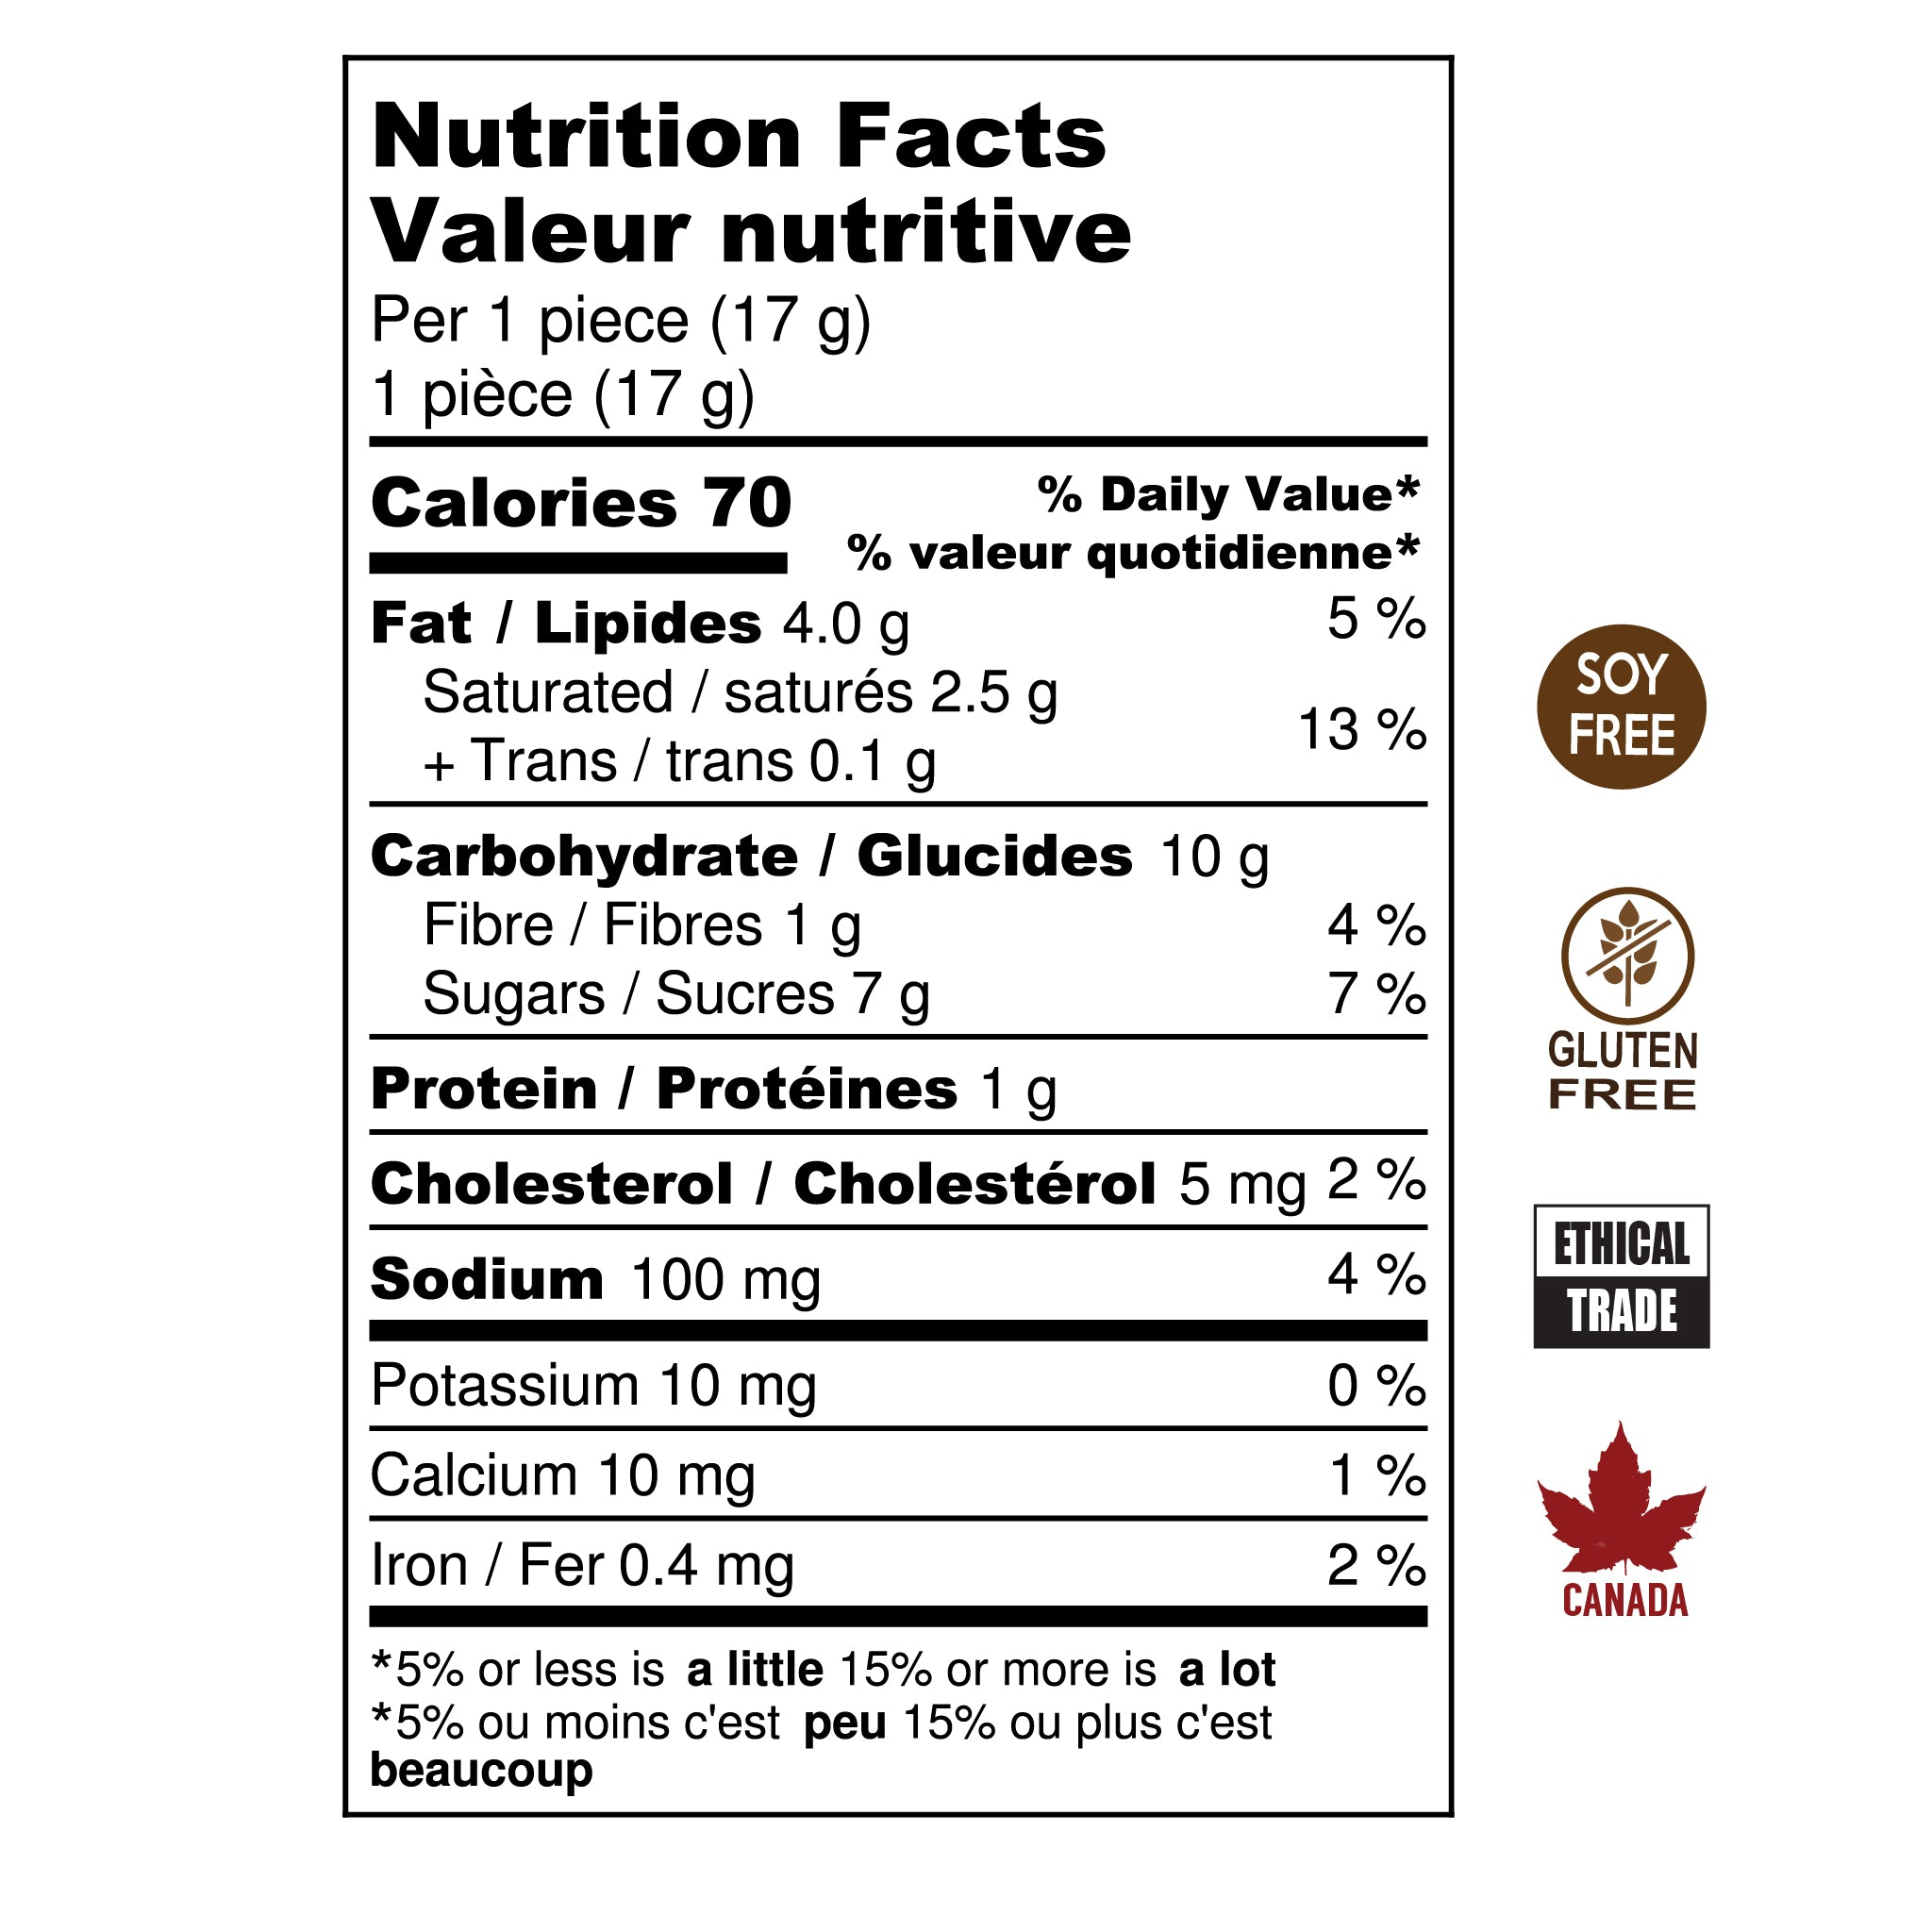 Nutritional Facts for Salted Caramels